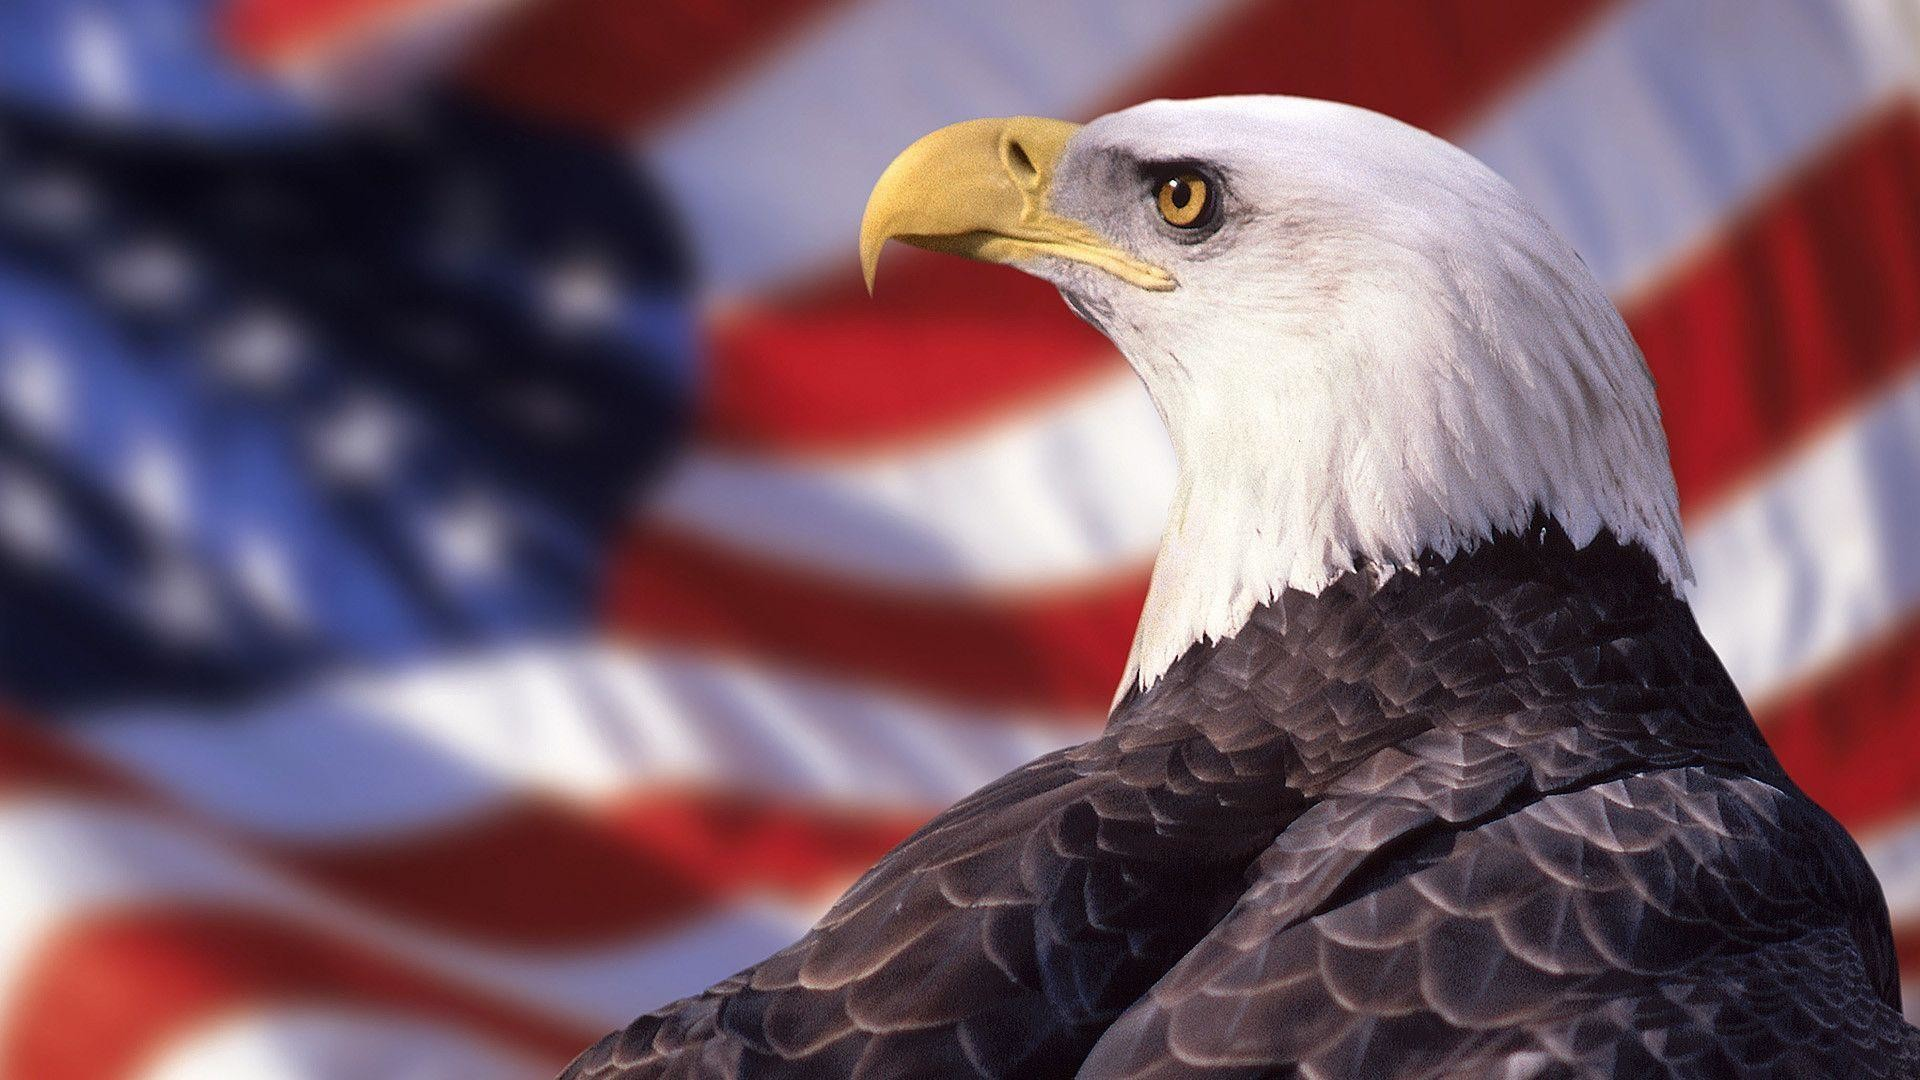 American Flag With Eagle Wallpaper 70 images 1920x1080